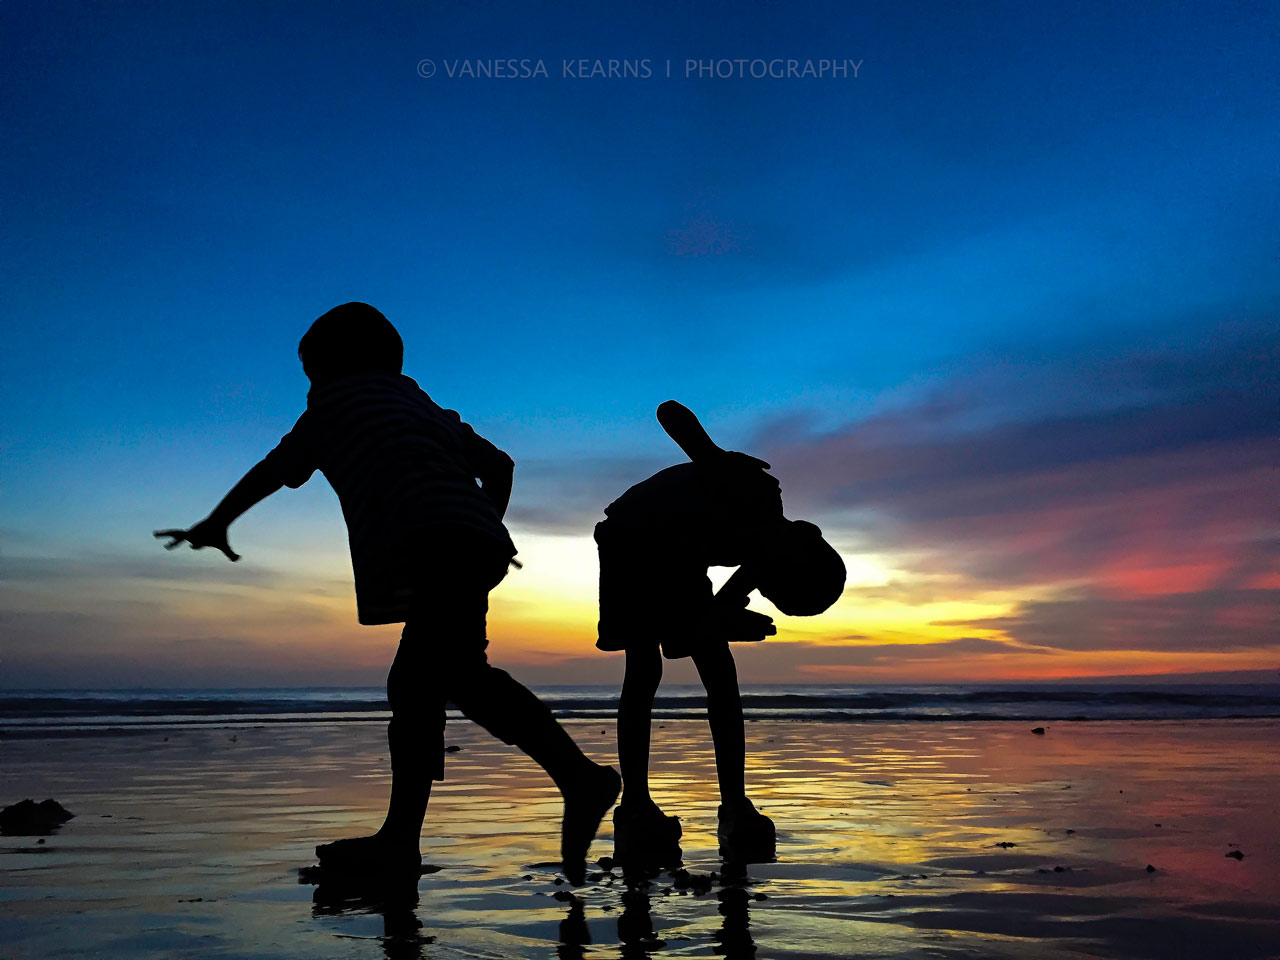 "Members' Favorite (second) and Judges' Selection (third, tie): ""Silhouette and Pirouette"" at Phuket Beach, Thailand by Vanessa Kearns."